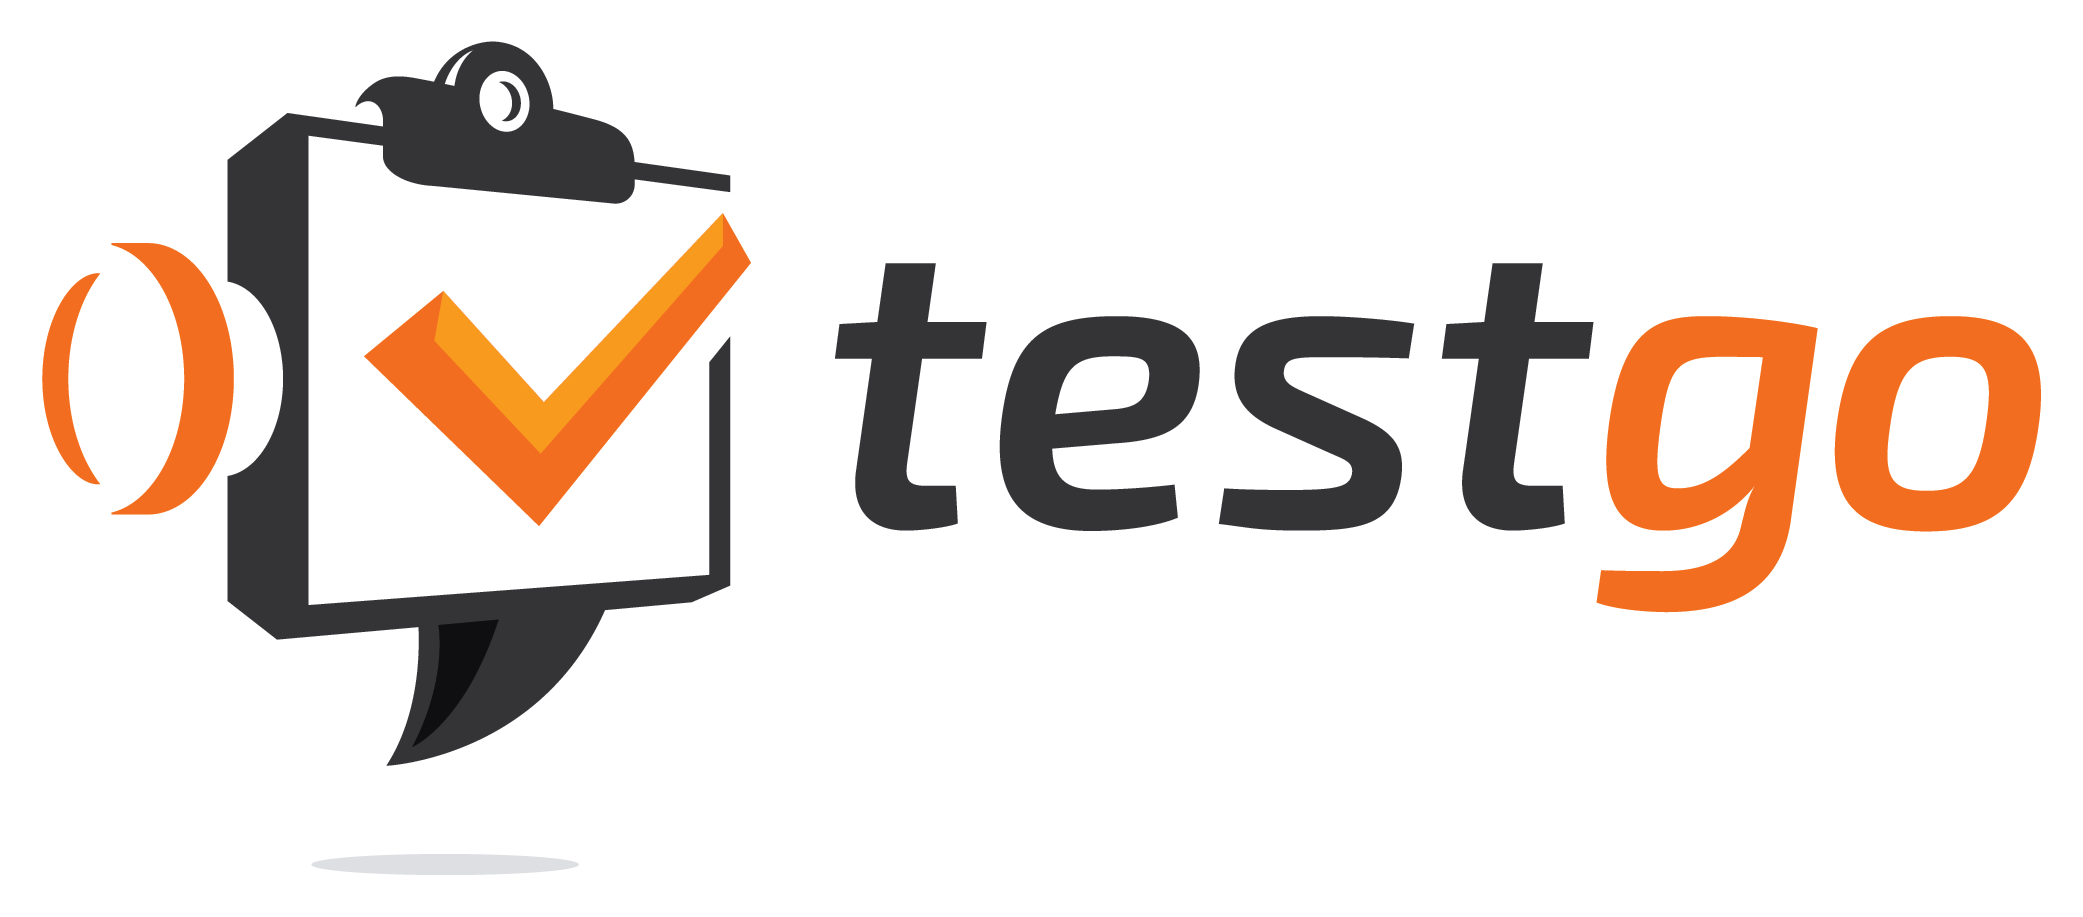 Create a modern, fresh and hip logo for testgo